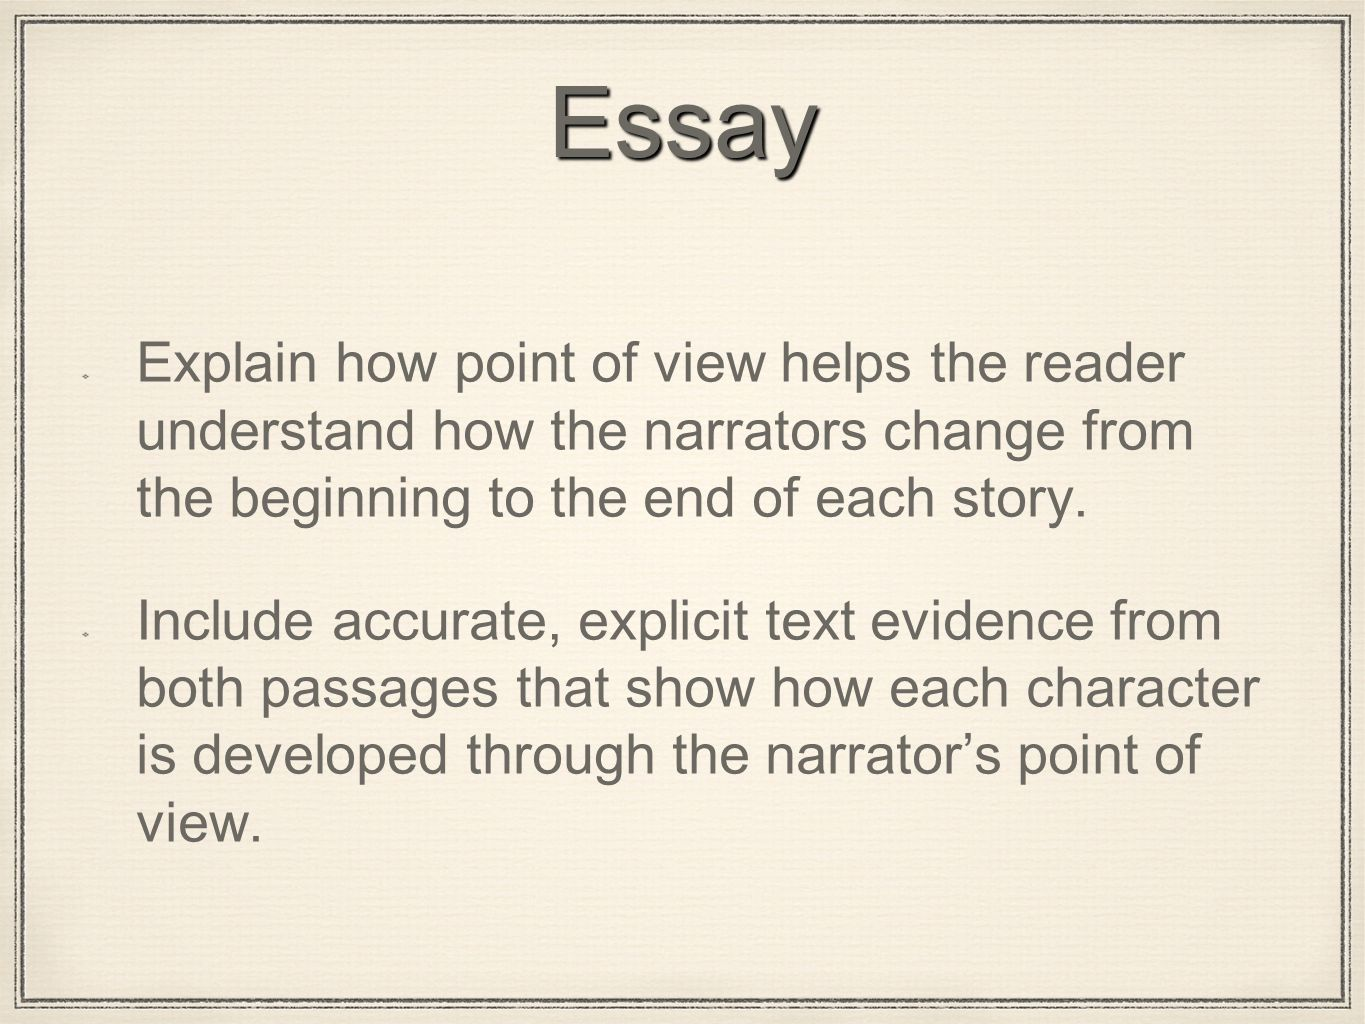 Essay Explain how point of view helps the reader understand how the narrators change from the beginning to the end of each story.